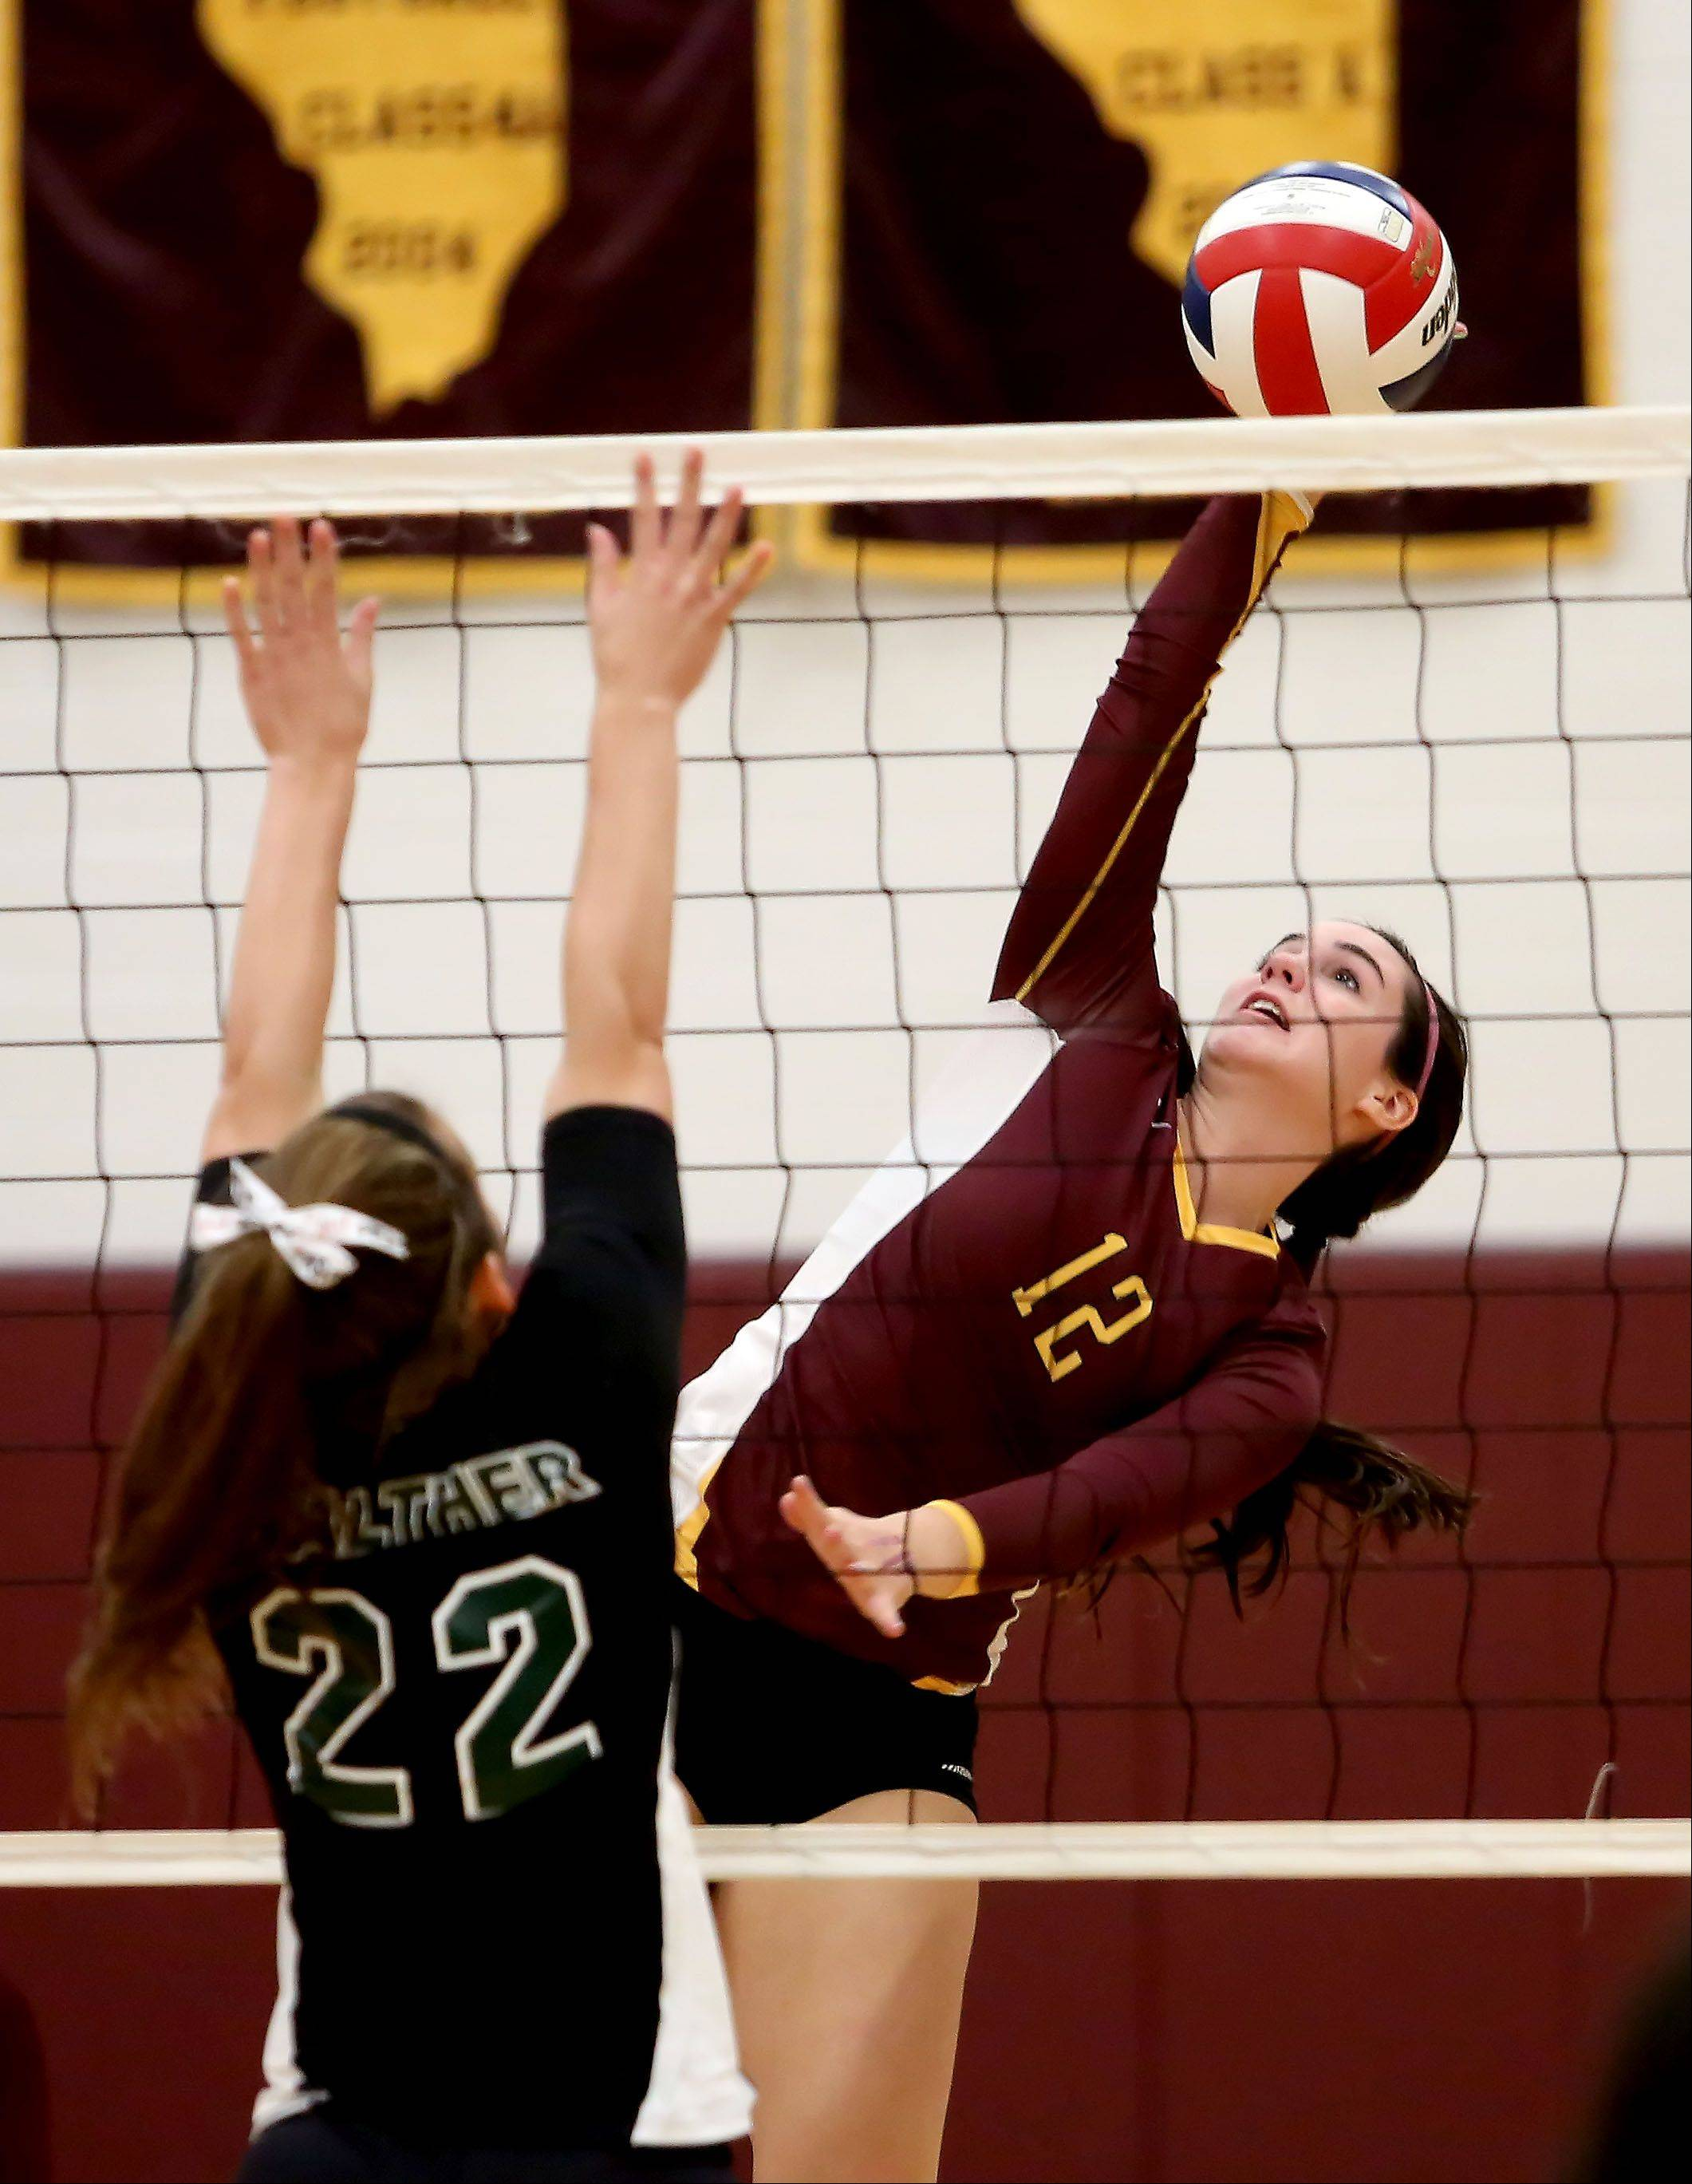 Kerry Desmond of Montini moves up to spike the ball past Miranda Heuser of Walther Christian, left, in girls volleyball action on Monday in Lombard.